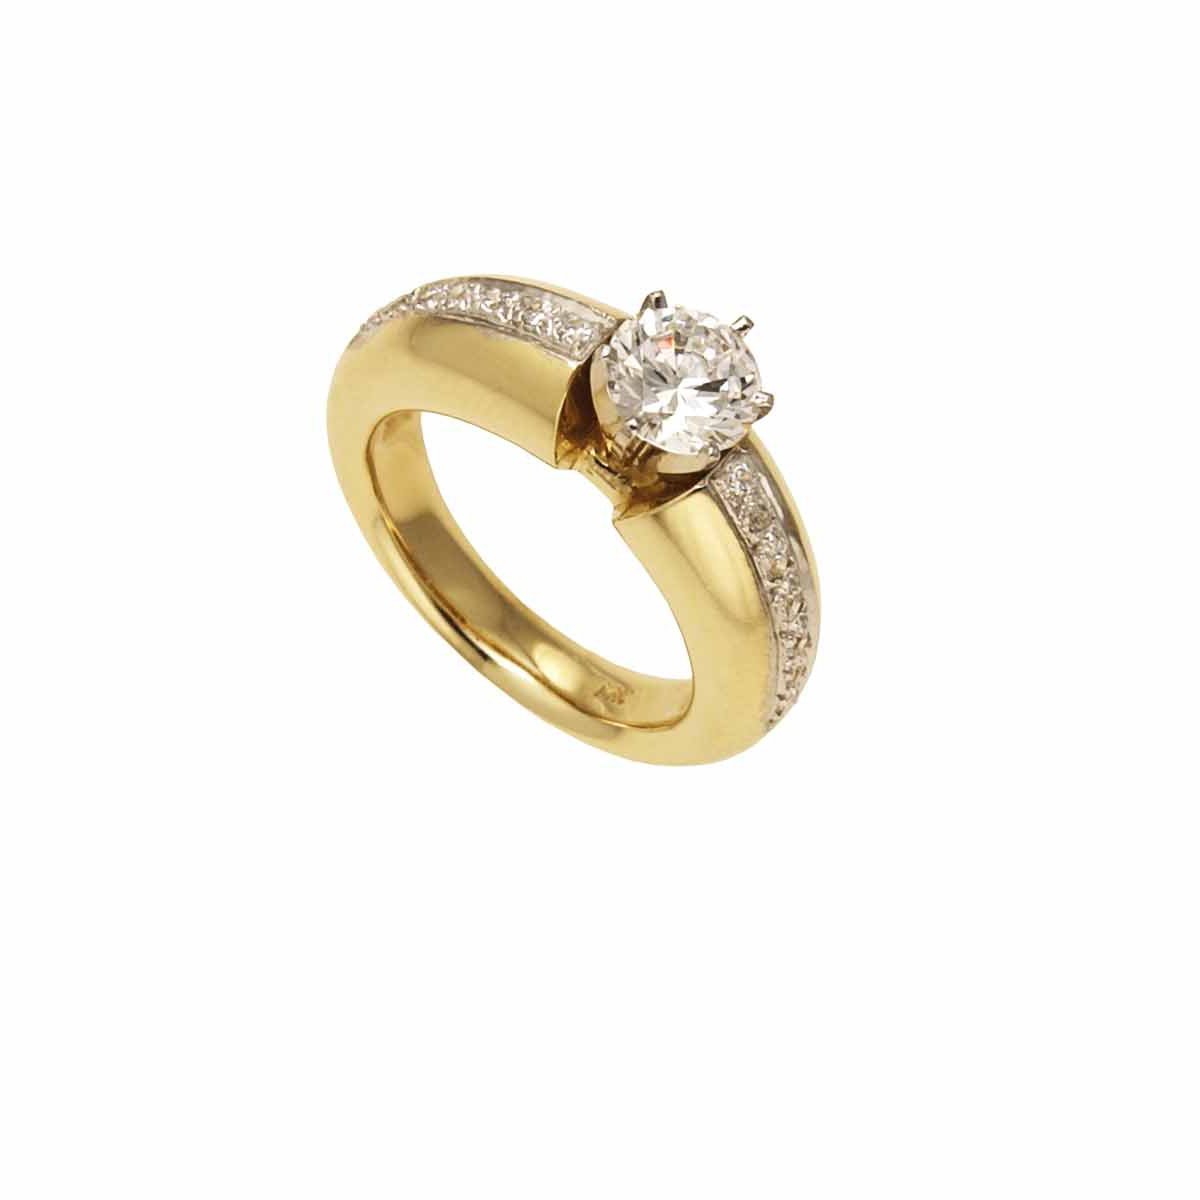 Solo engagement ring 18k yellow gold from Chris Aire.